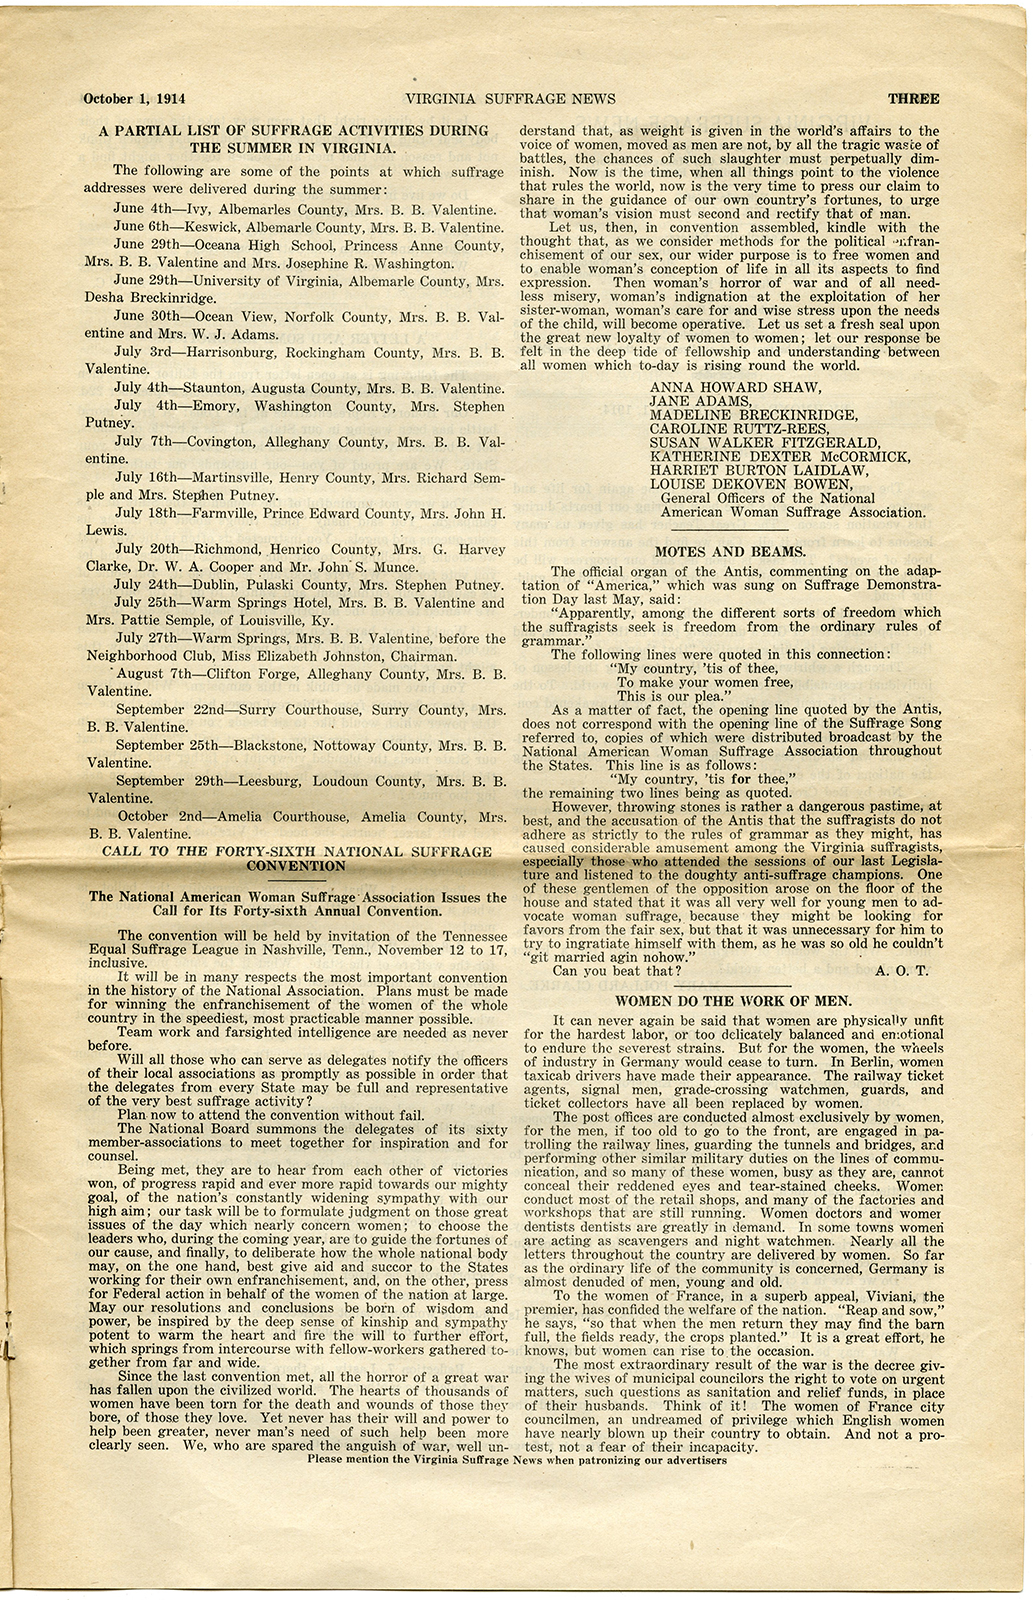 VCU_M9 B56 Virginia Suffrage News Oct 1 1914 p3 rsz.jpg